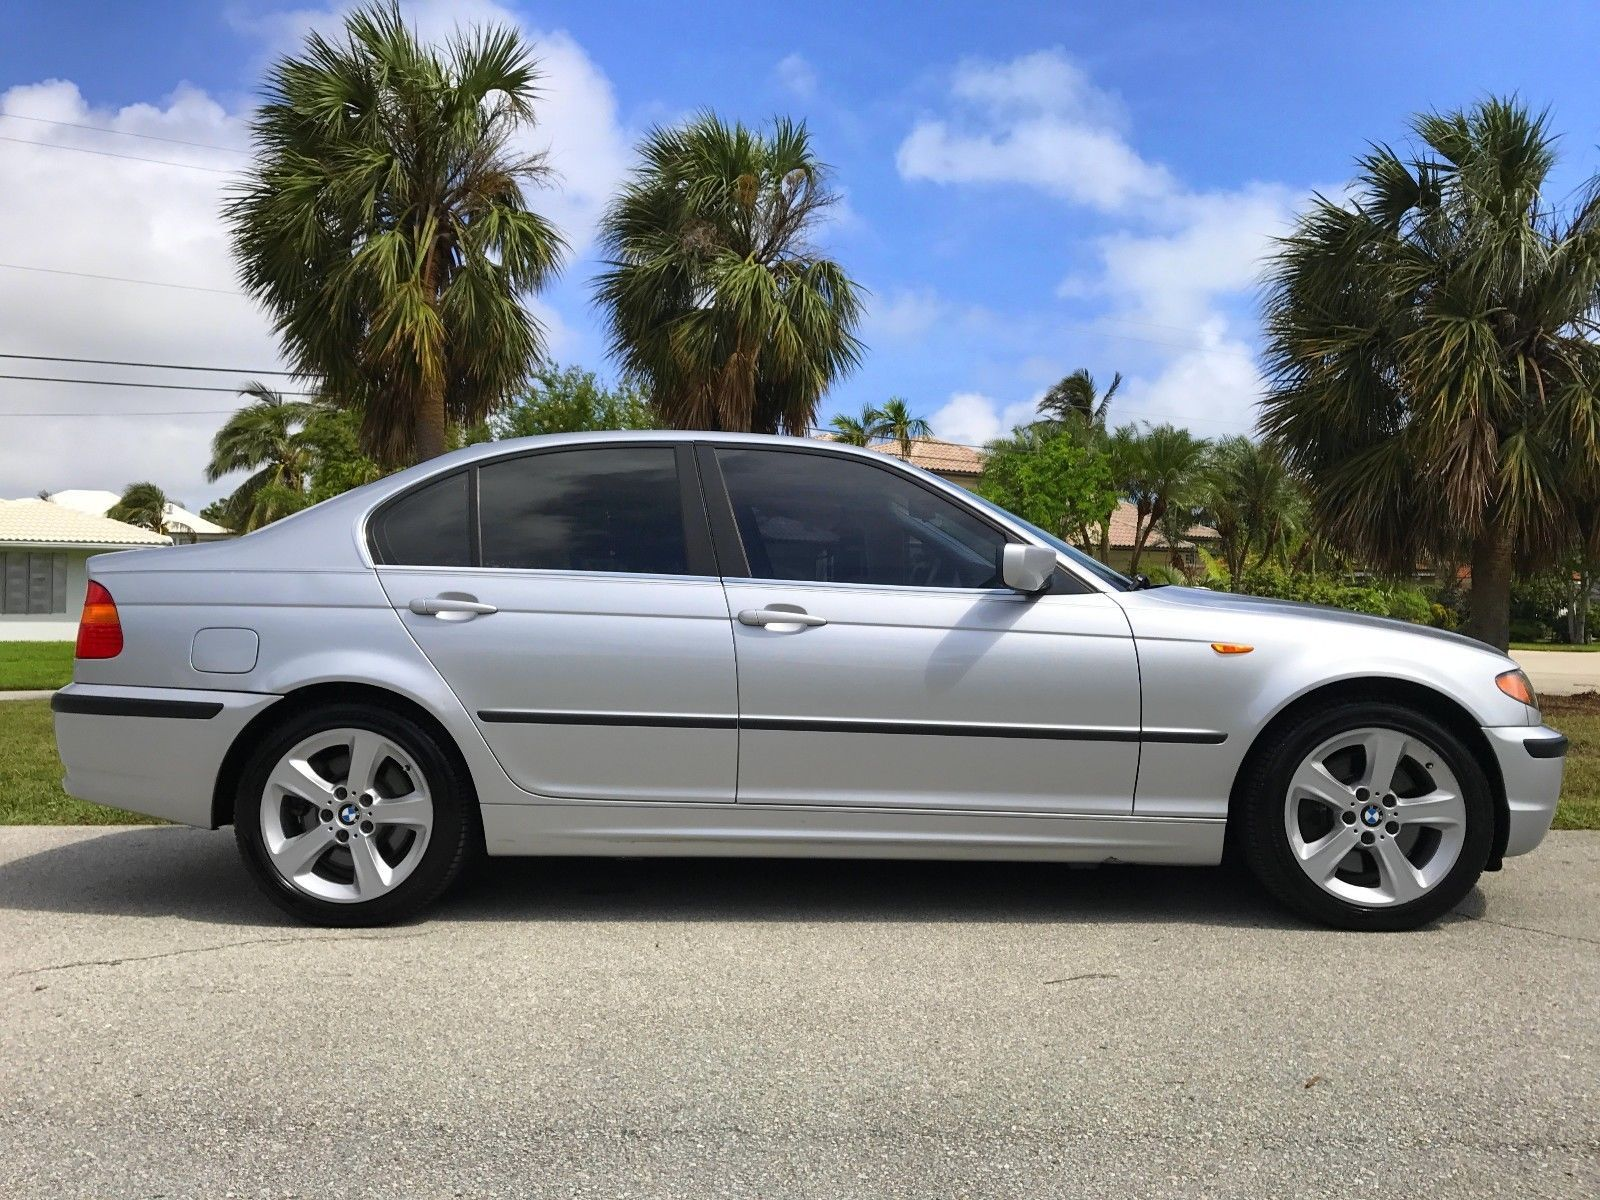 medium resolution of nice awesome 2004 bmw 3 series 330xi awd florida car sunroof new tires 2004 bmw 330xi awd sunroof premium pkg not 325i 325xi 328i 328xi 330i